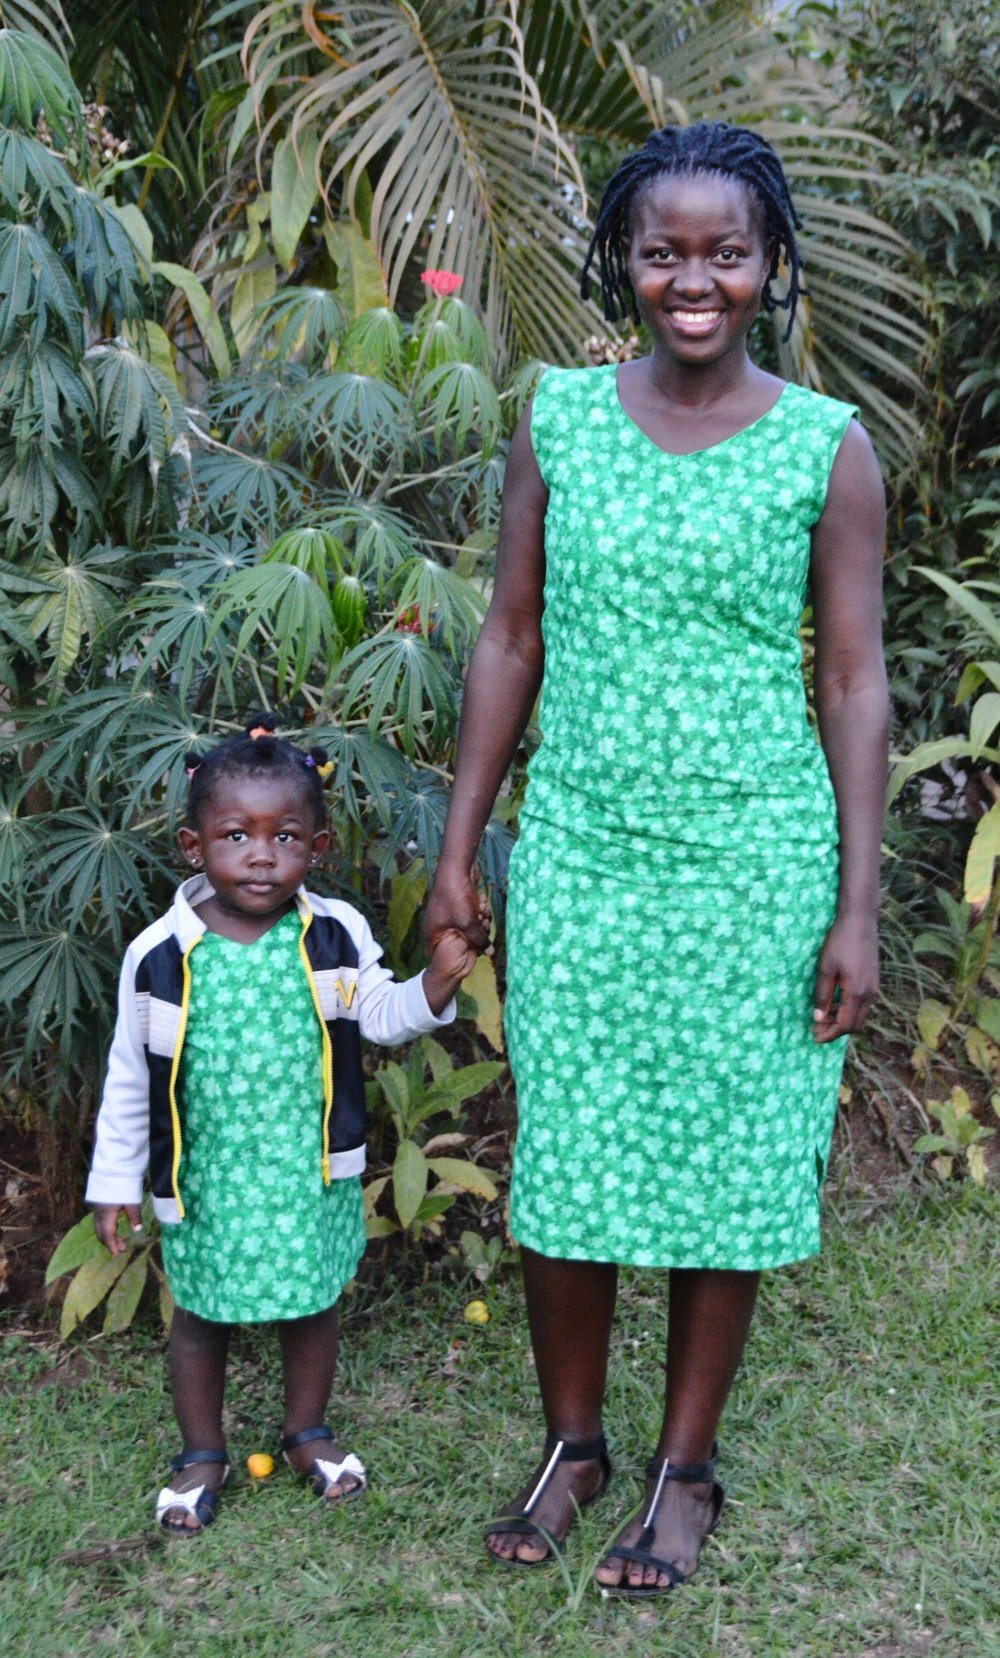 Lydia and her daughter Esther in 2017 wearing matching dresses that Lydia made!